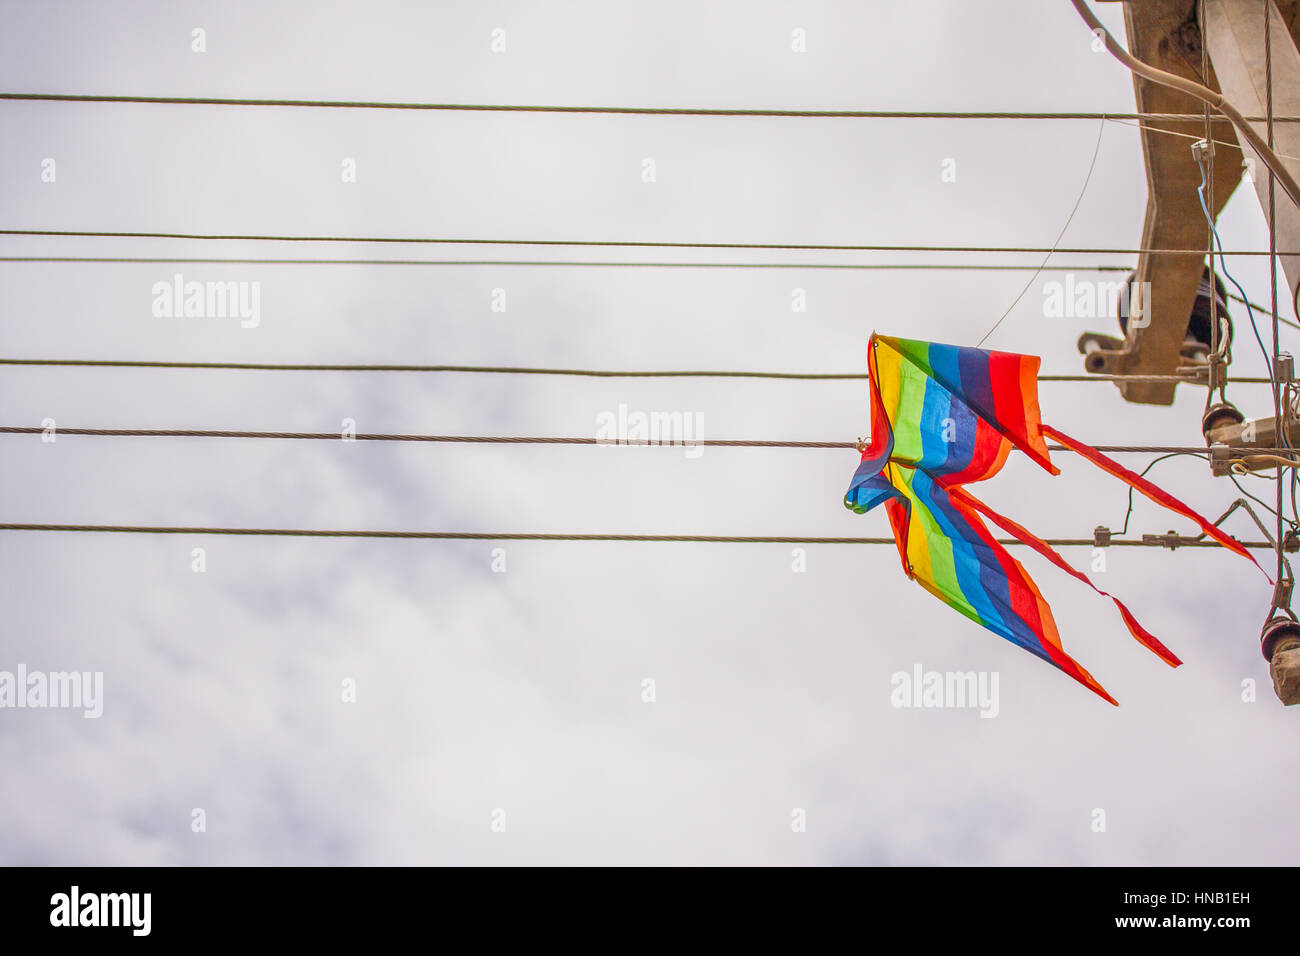 A kite stuck on a power line. Stock Photo